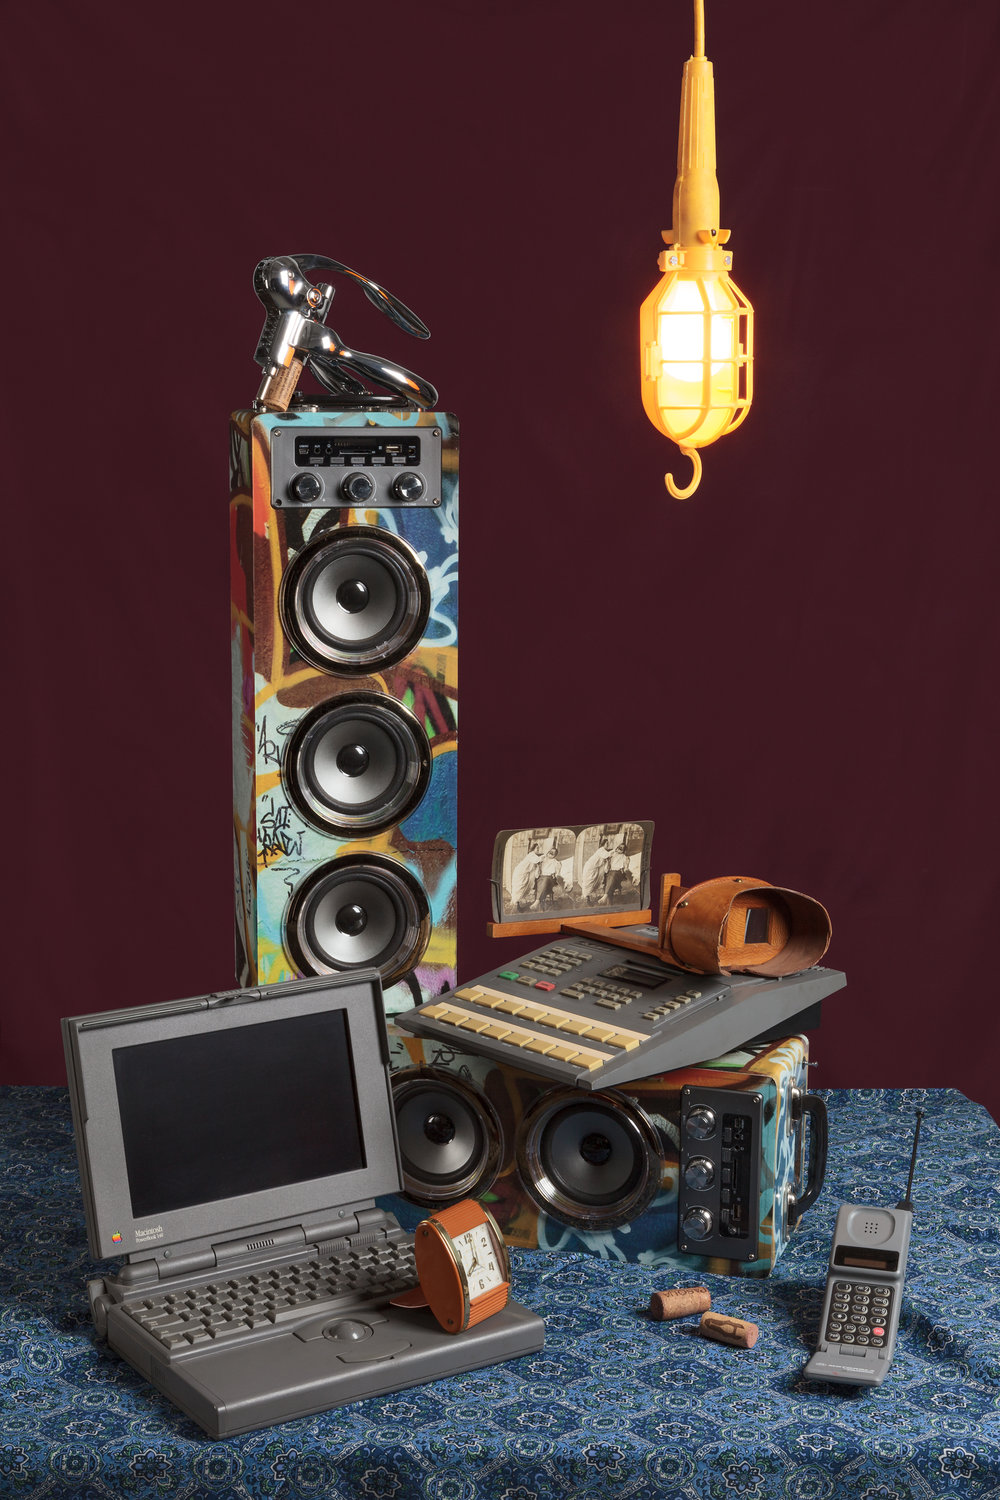 Tech Vanitas: Graffiti Speakers